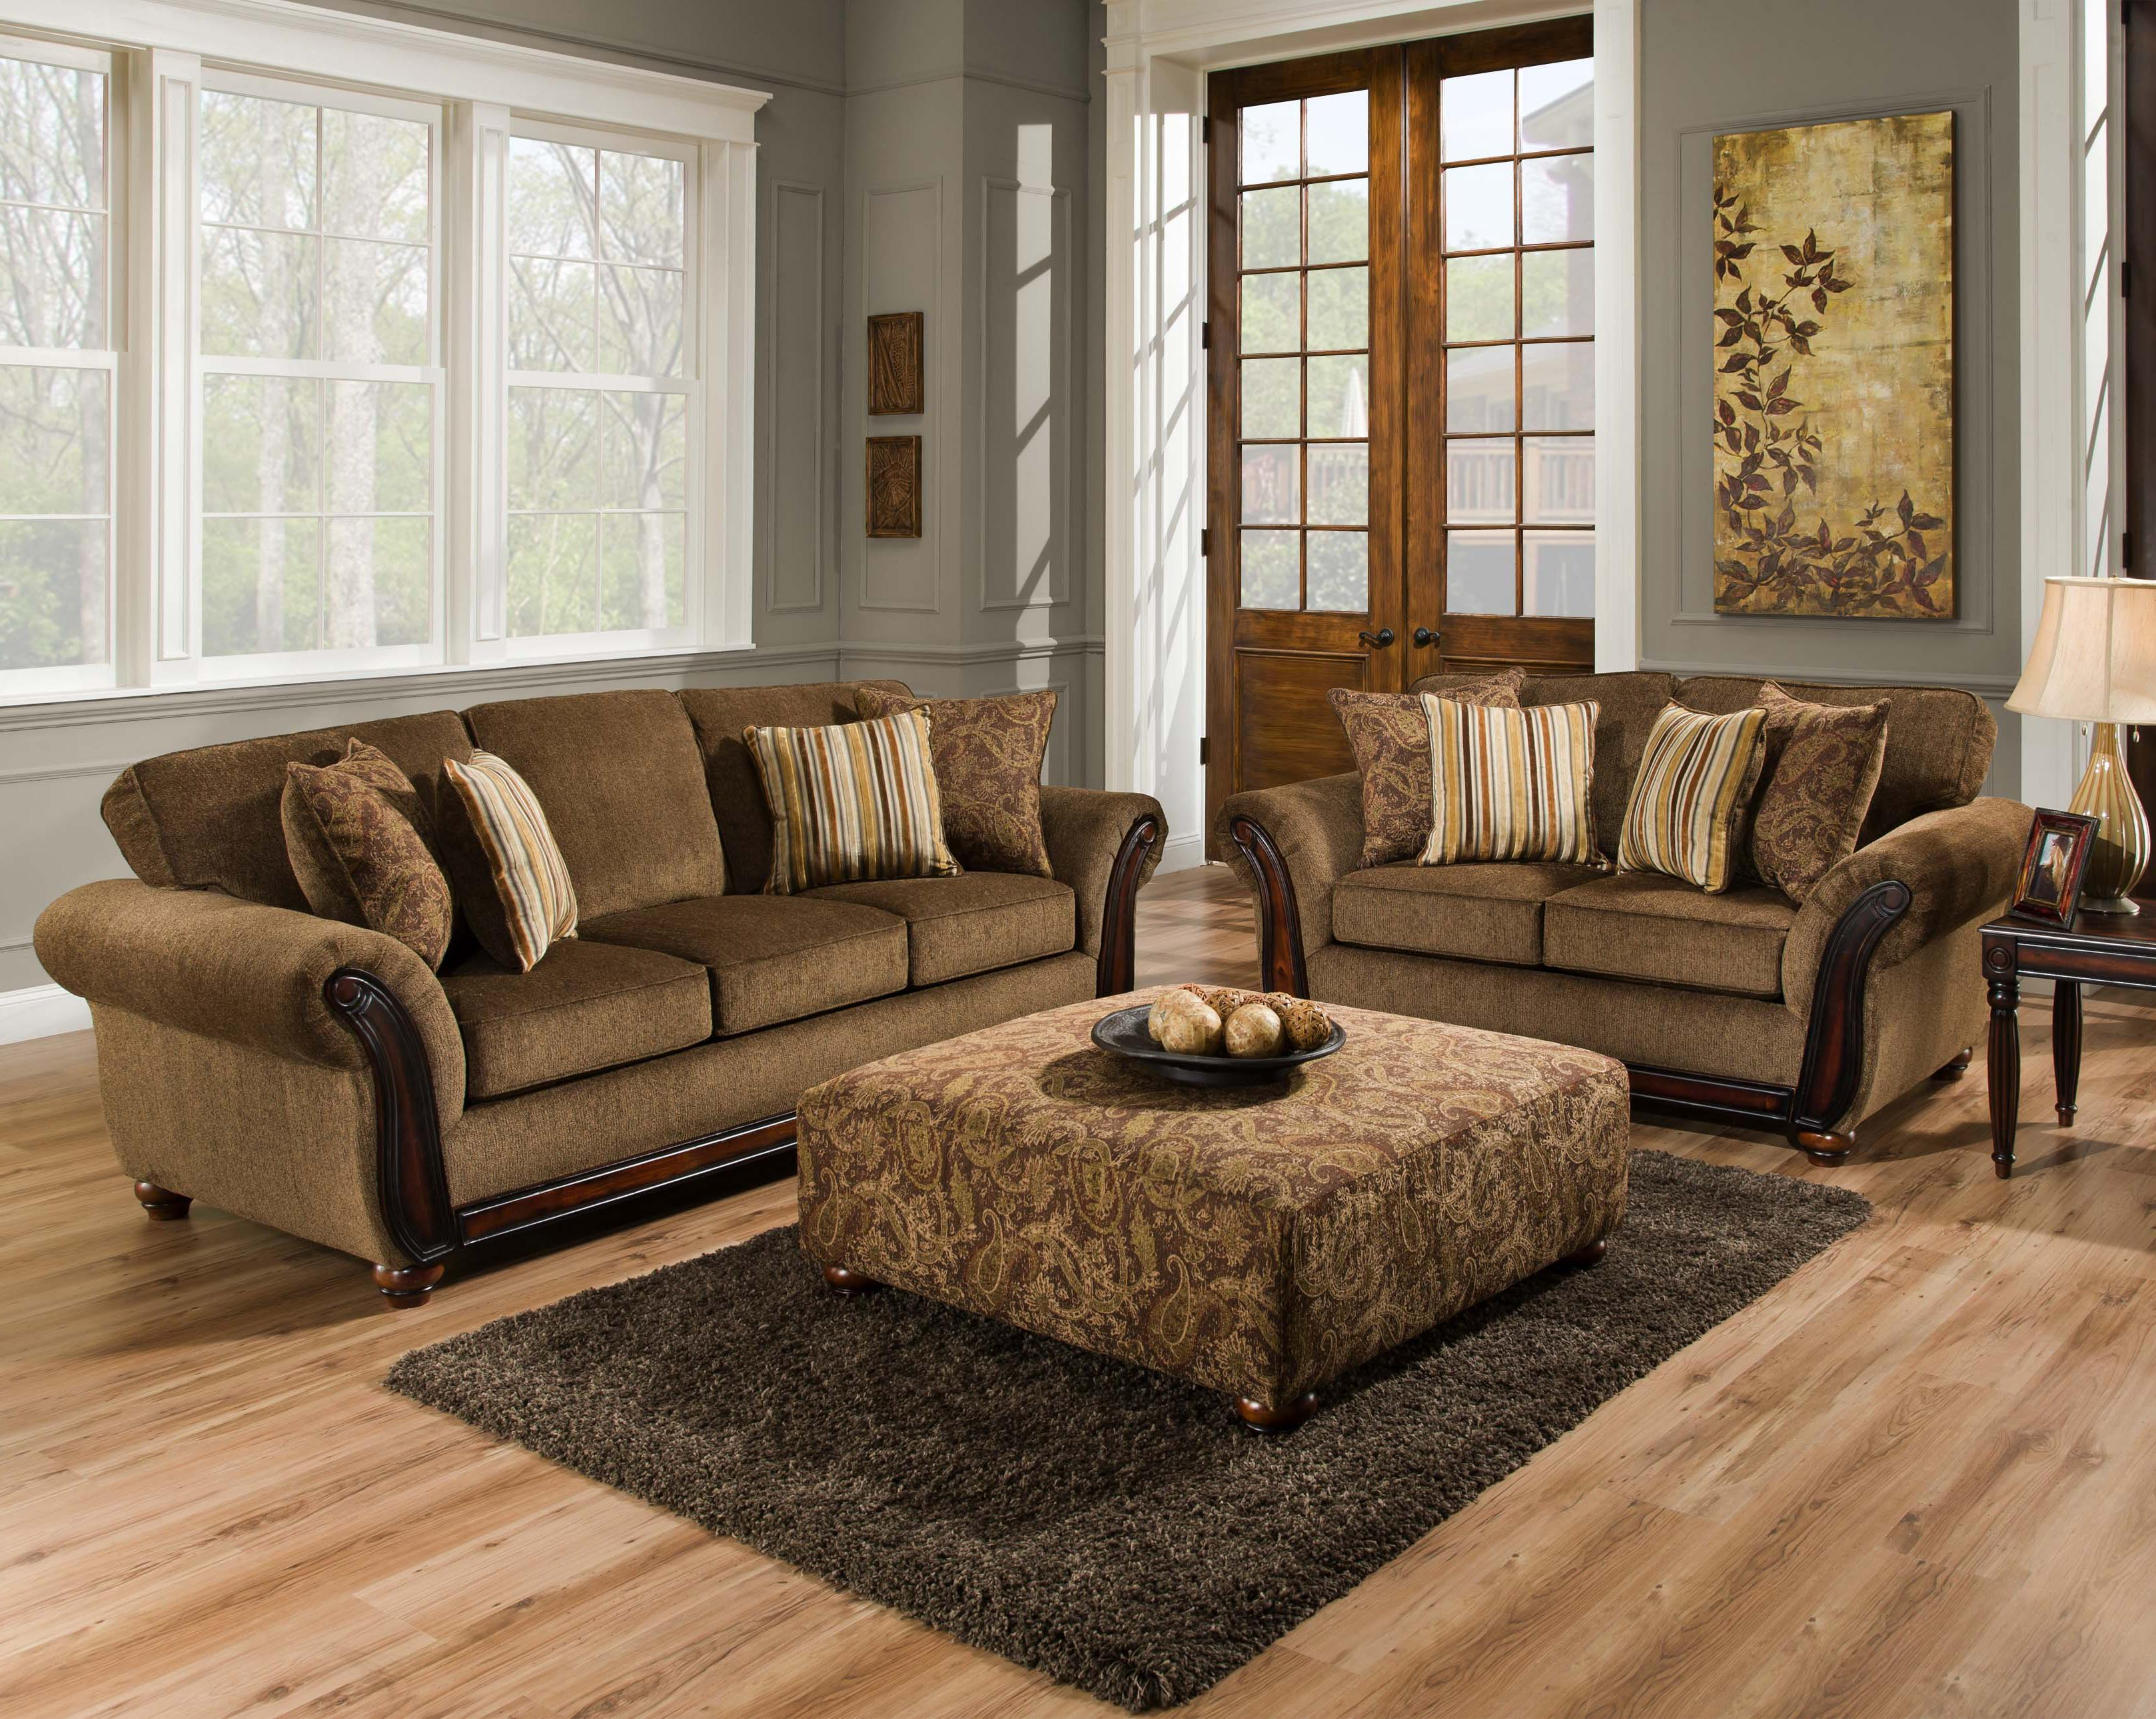 American Furniture 5650 Stationary Living Room Group Miskelly Furniture Stationary Living